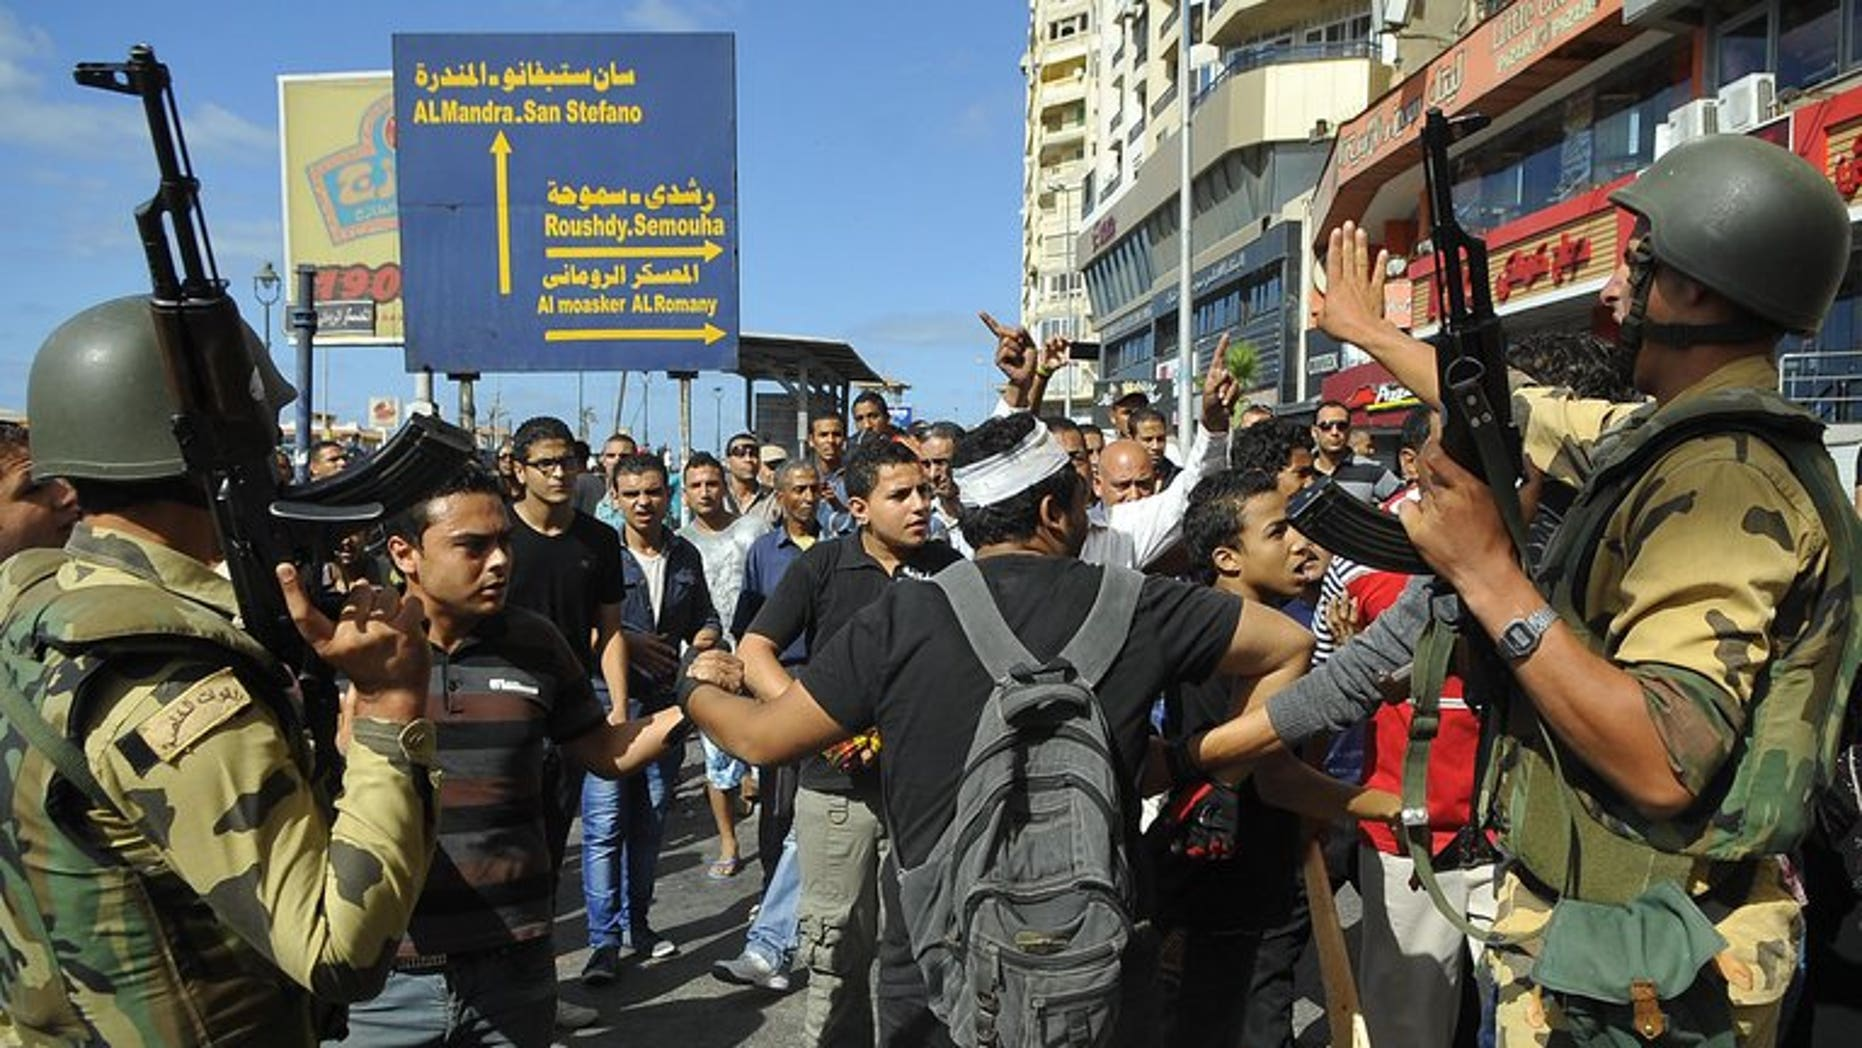 Egyptian soldiers patrol as supporters of the Muslim Brotherhood and Egypt's ousted president Mohamed Morsi clash with opposition demonstrators in Alexandria on September 6, 2013. Interim president Adly Mansour on Thursday extended by two months Egypt's state of emergency in force since mid-August, his spokesman said.